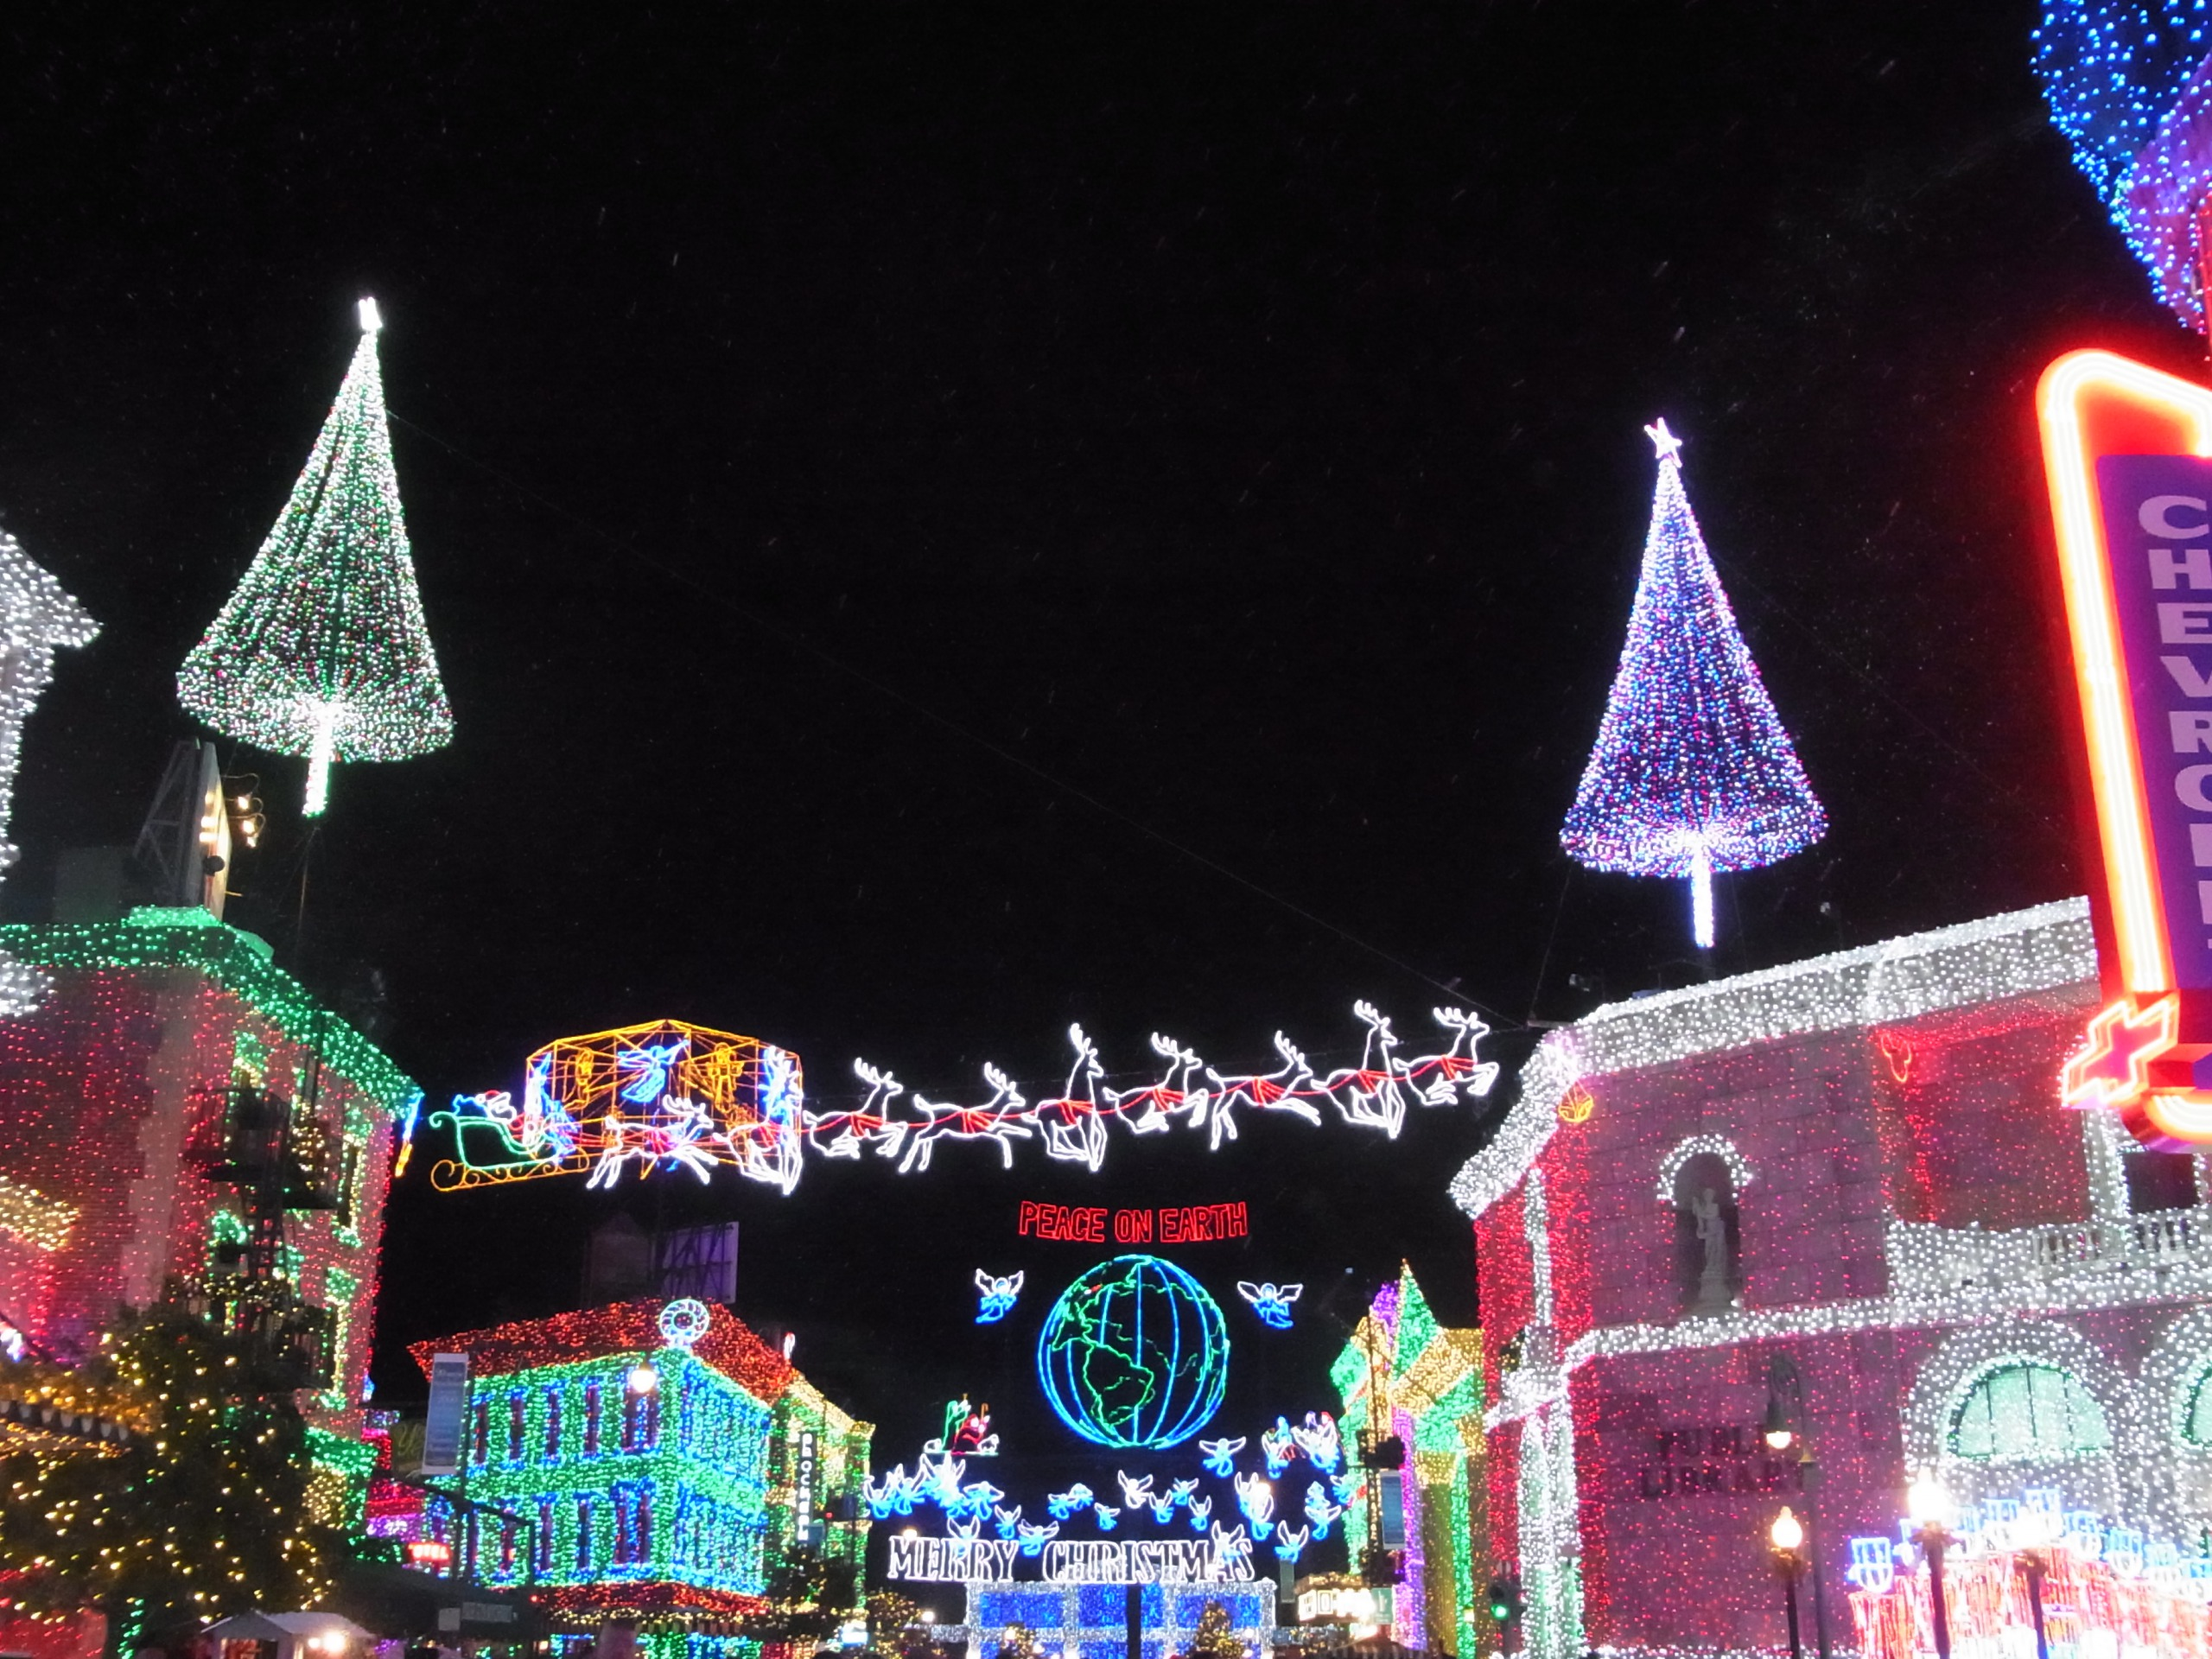 WDW旅行記 41 The Osborne Family Spectacle of Dancing Lights